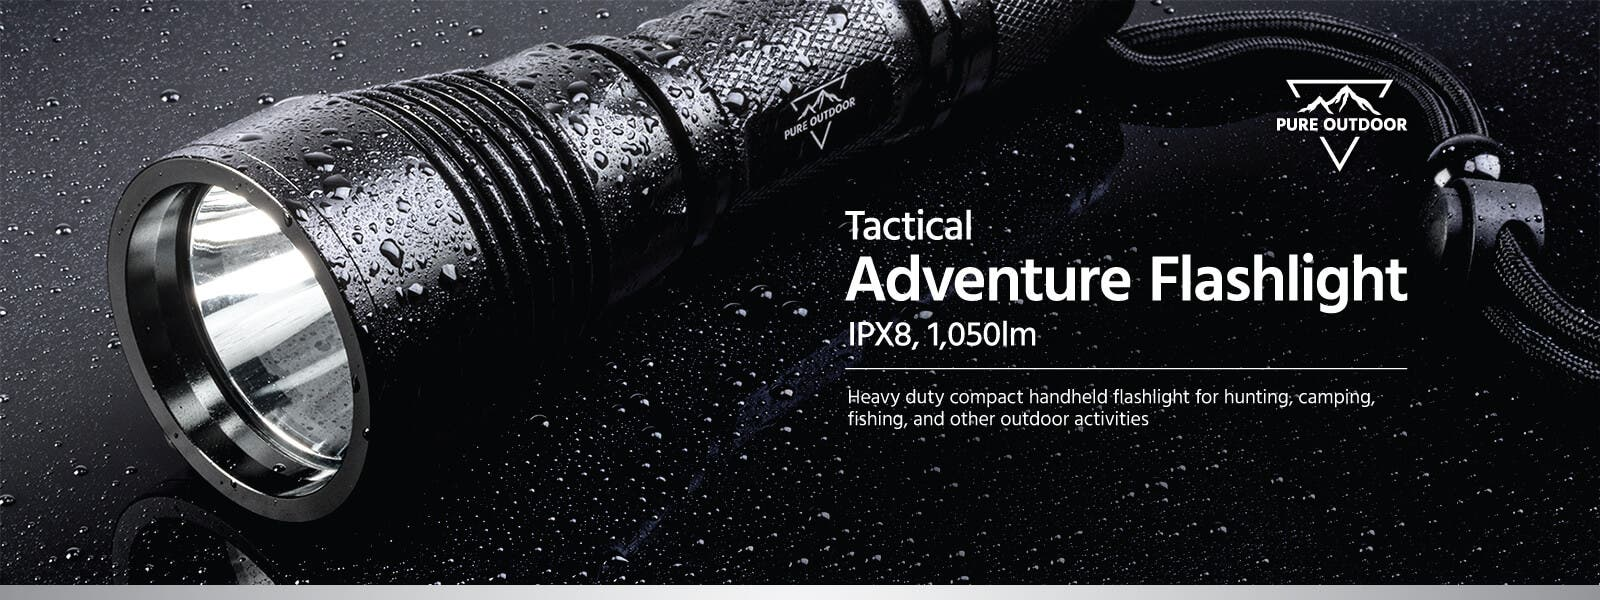 Tactical Adventure Flashlight